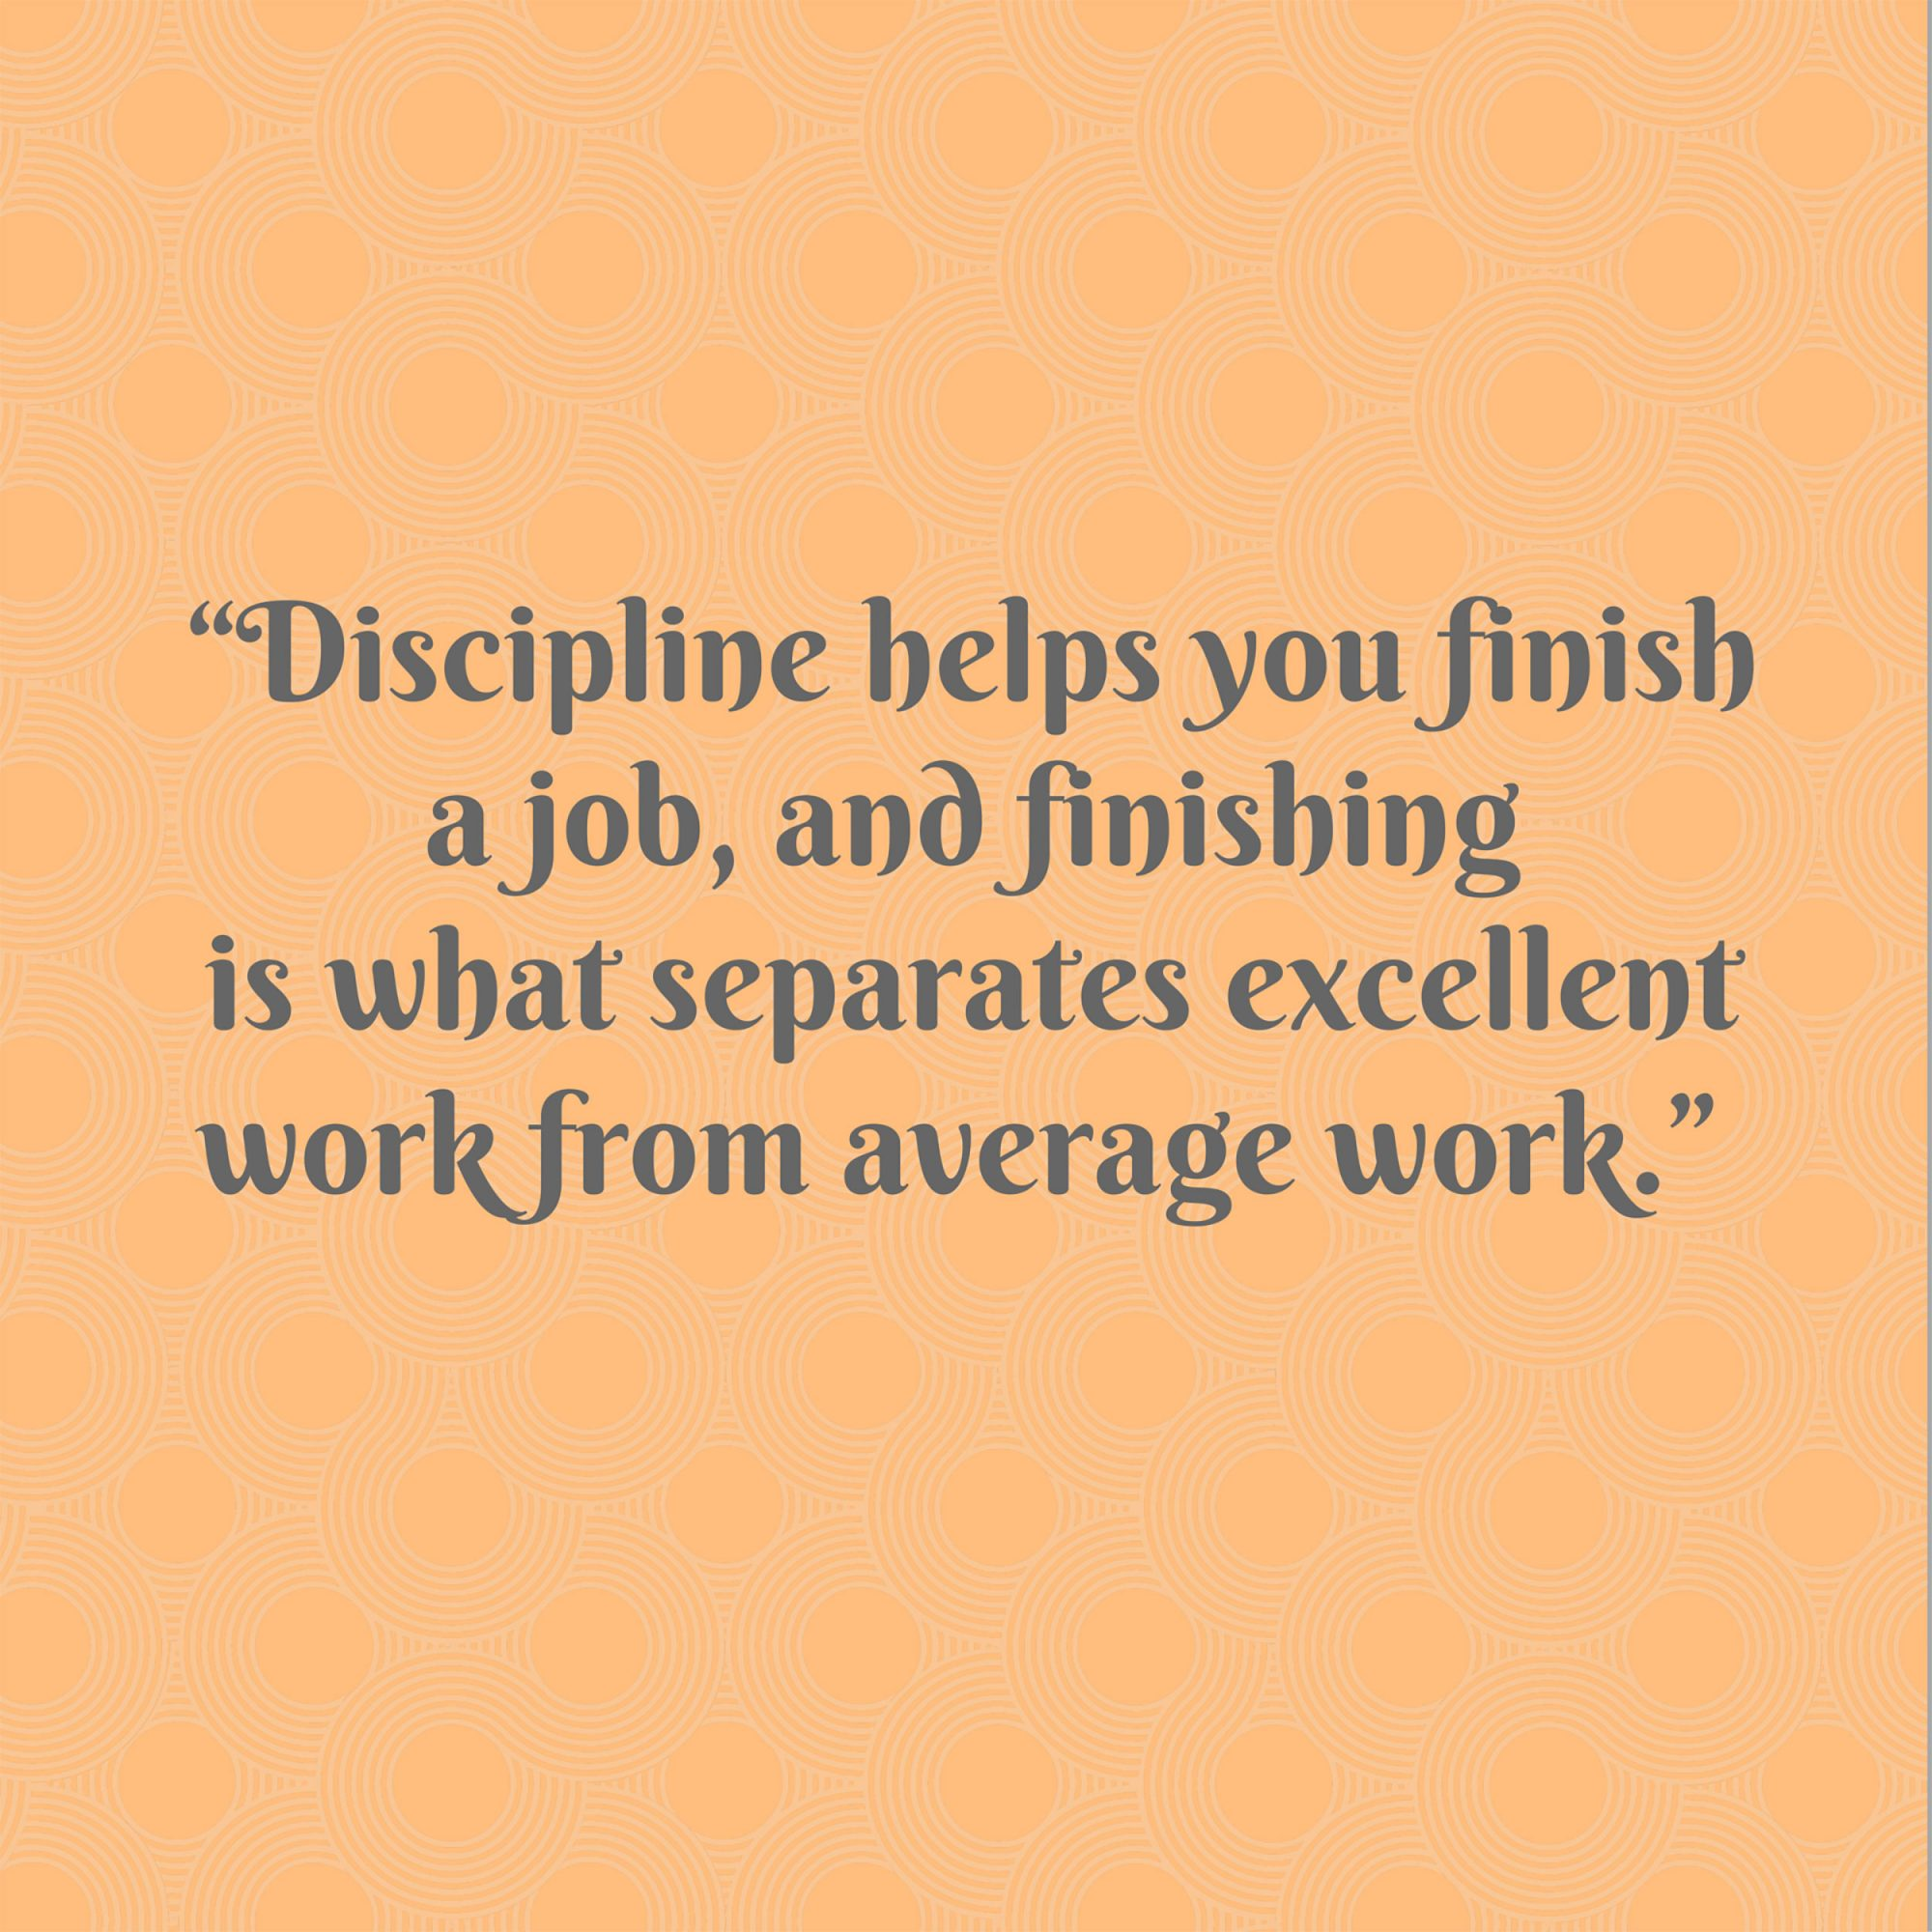 Pat Summitt on Discipline